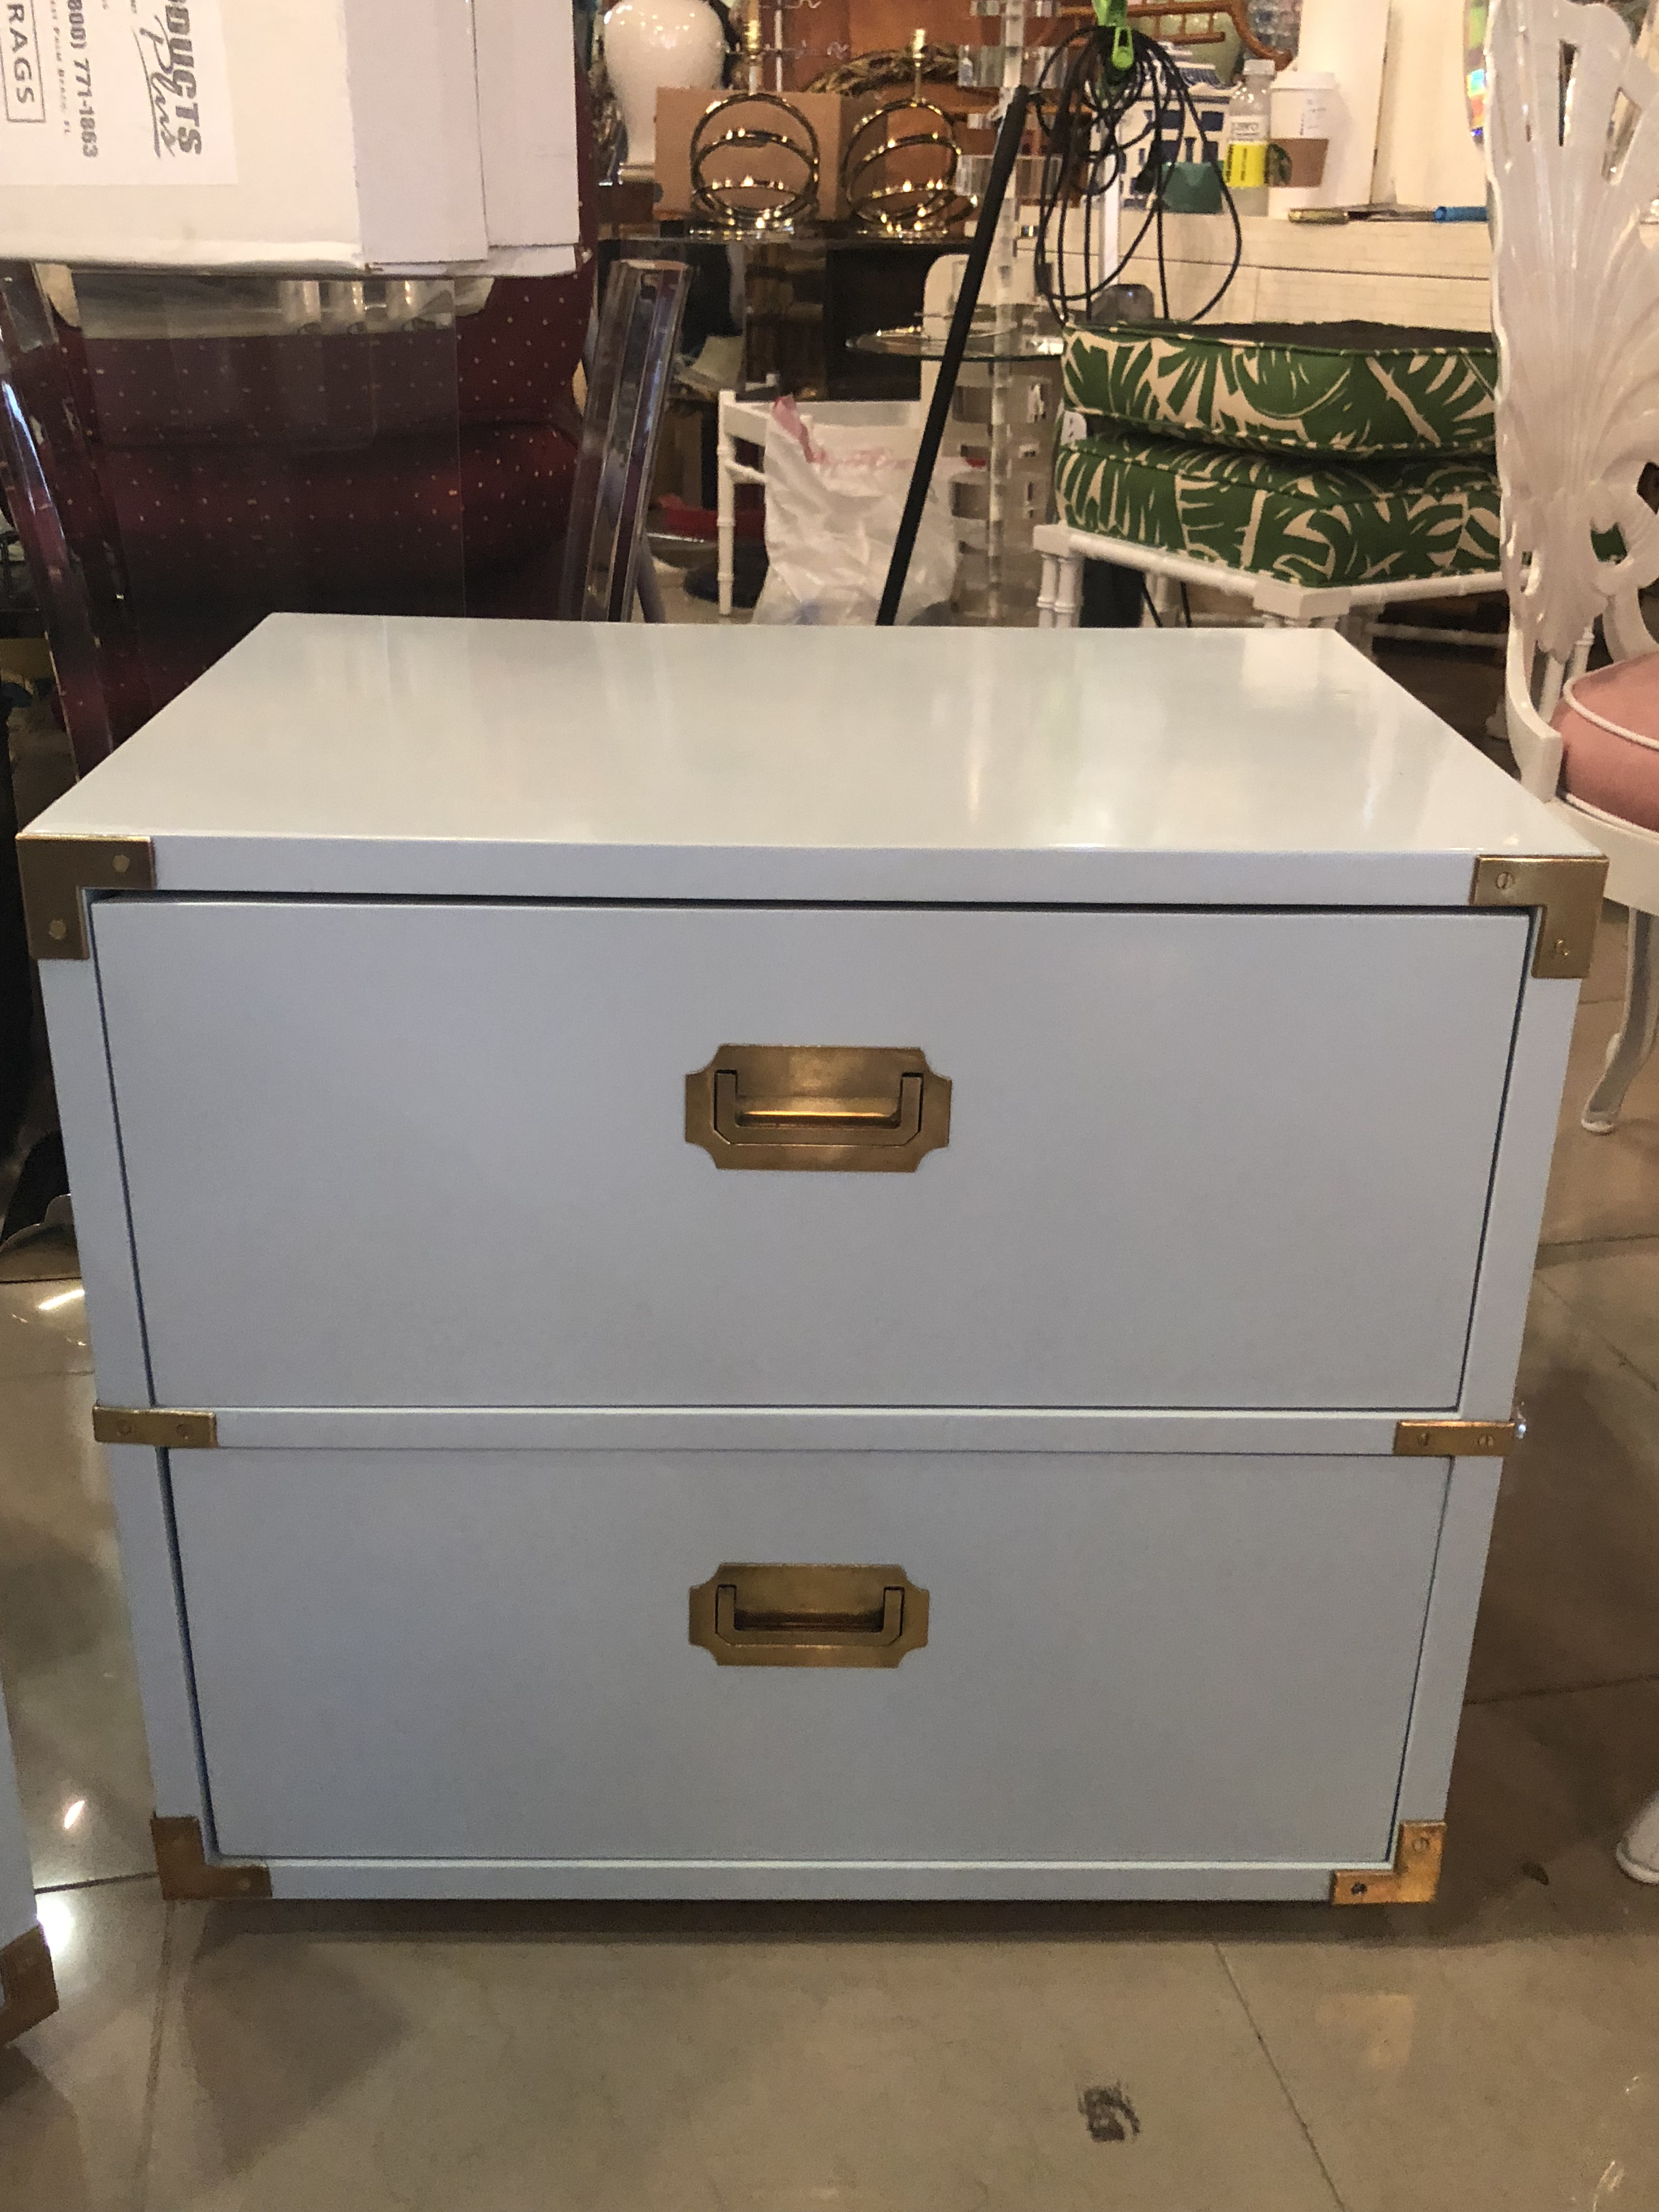 Laquered furniture Wood Vintage Lane Furniture Newly Lacquered Powder Blue Brass Campaigner Nightstands Chests a Pair For Sale Ebay Distinguished Vintage Lane Furniture Newly Lacquered Powder Blue